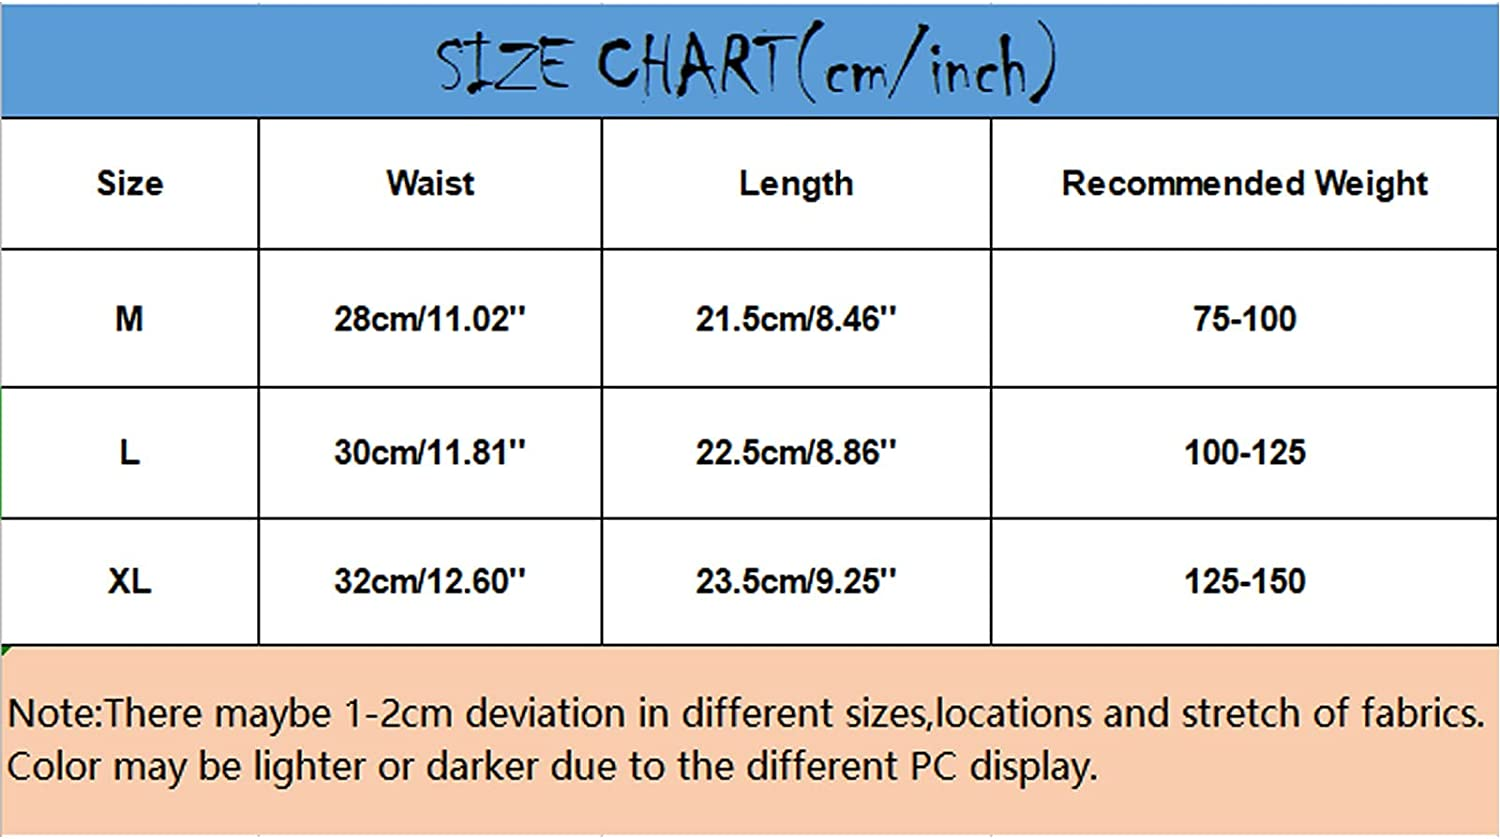 xoxing 4PC Plus Size Women's Basic Elastic Comfortable Intimates Sexy Solid Color Underwear Sleepwear Lingerie(T)